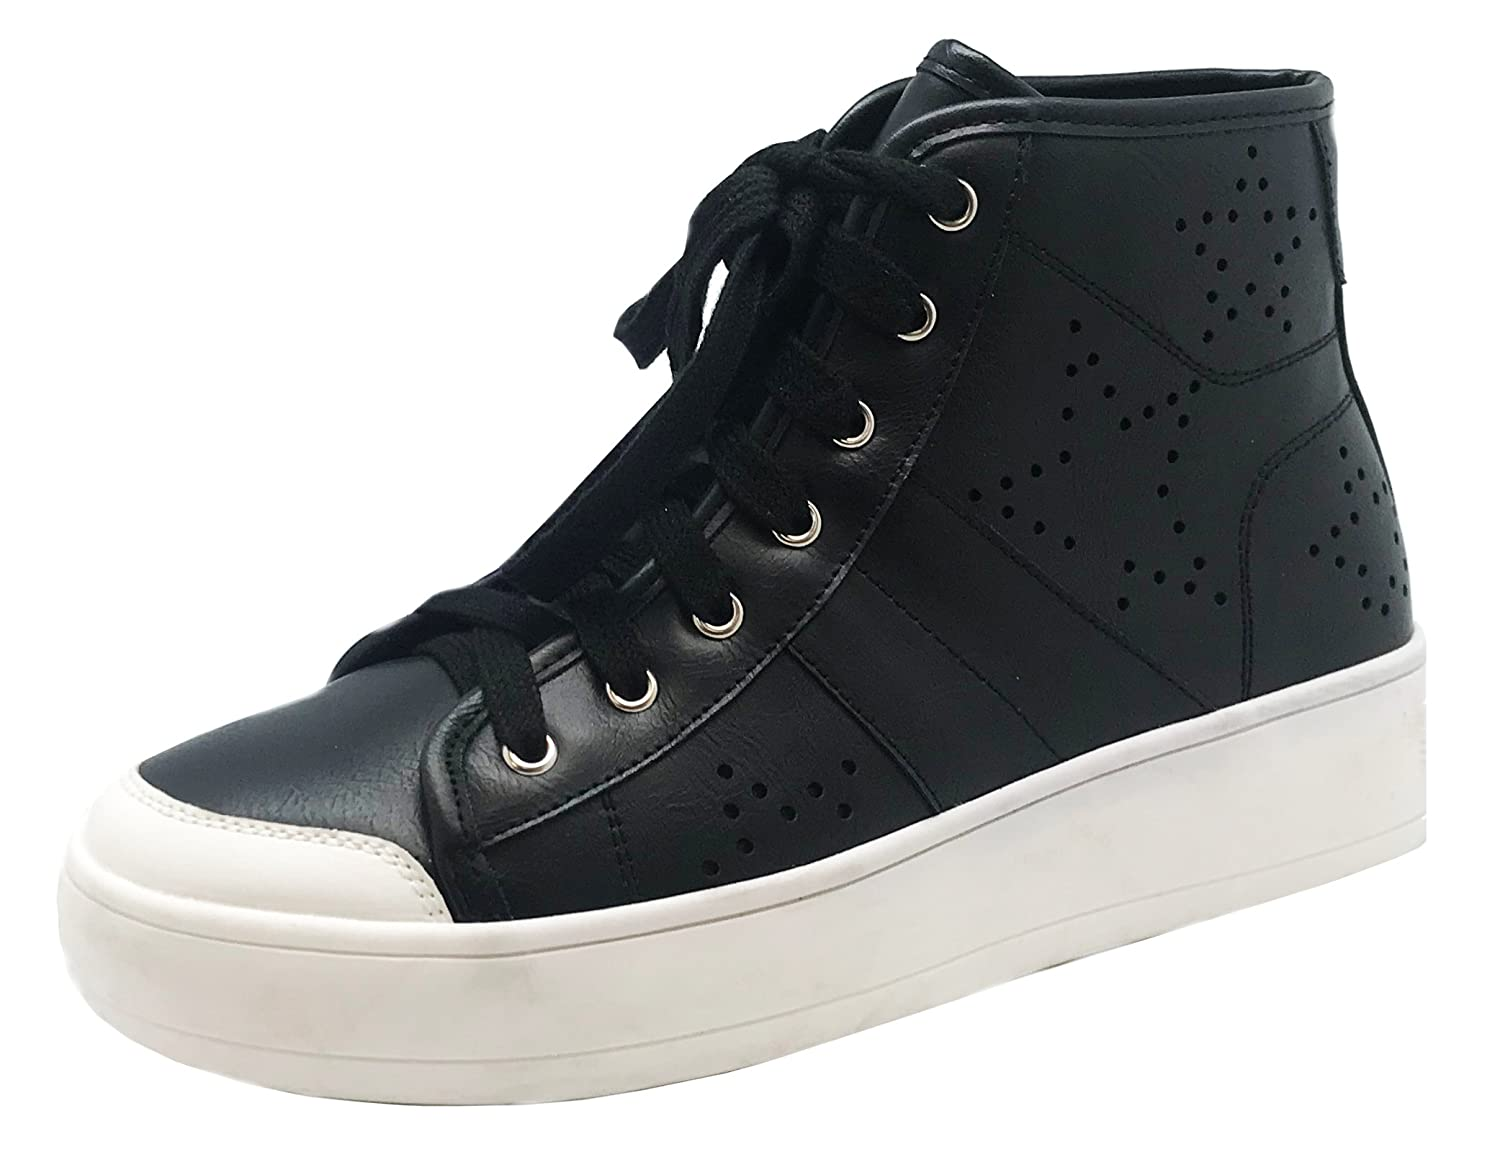 Cambridge Select Women's Closed Round Toe Lace Up Perforated Star Print High Top Casual Sport Fashion Sneaker by Cambridge Select